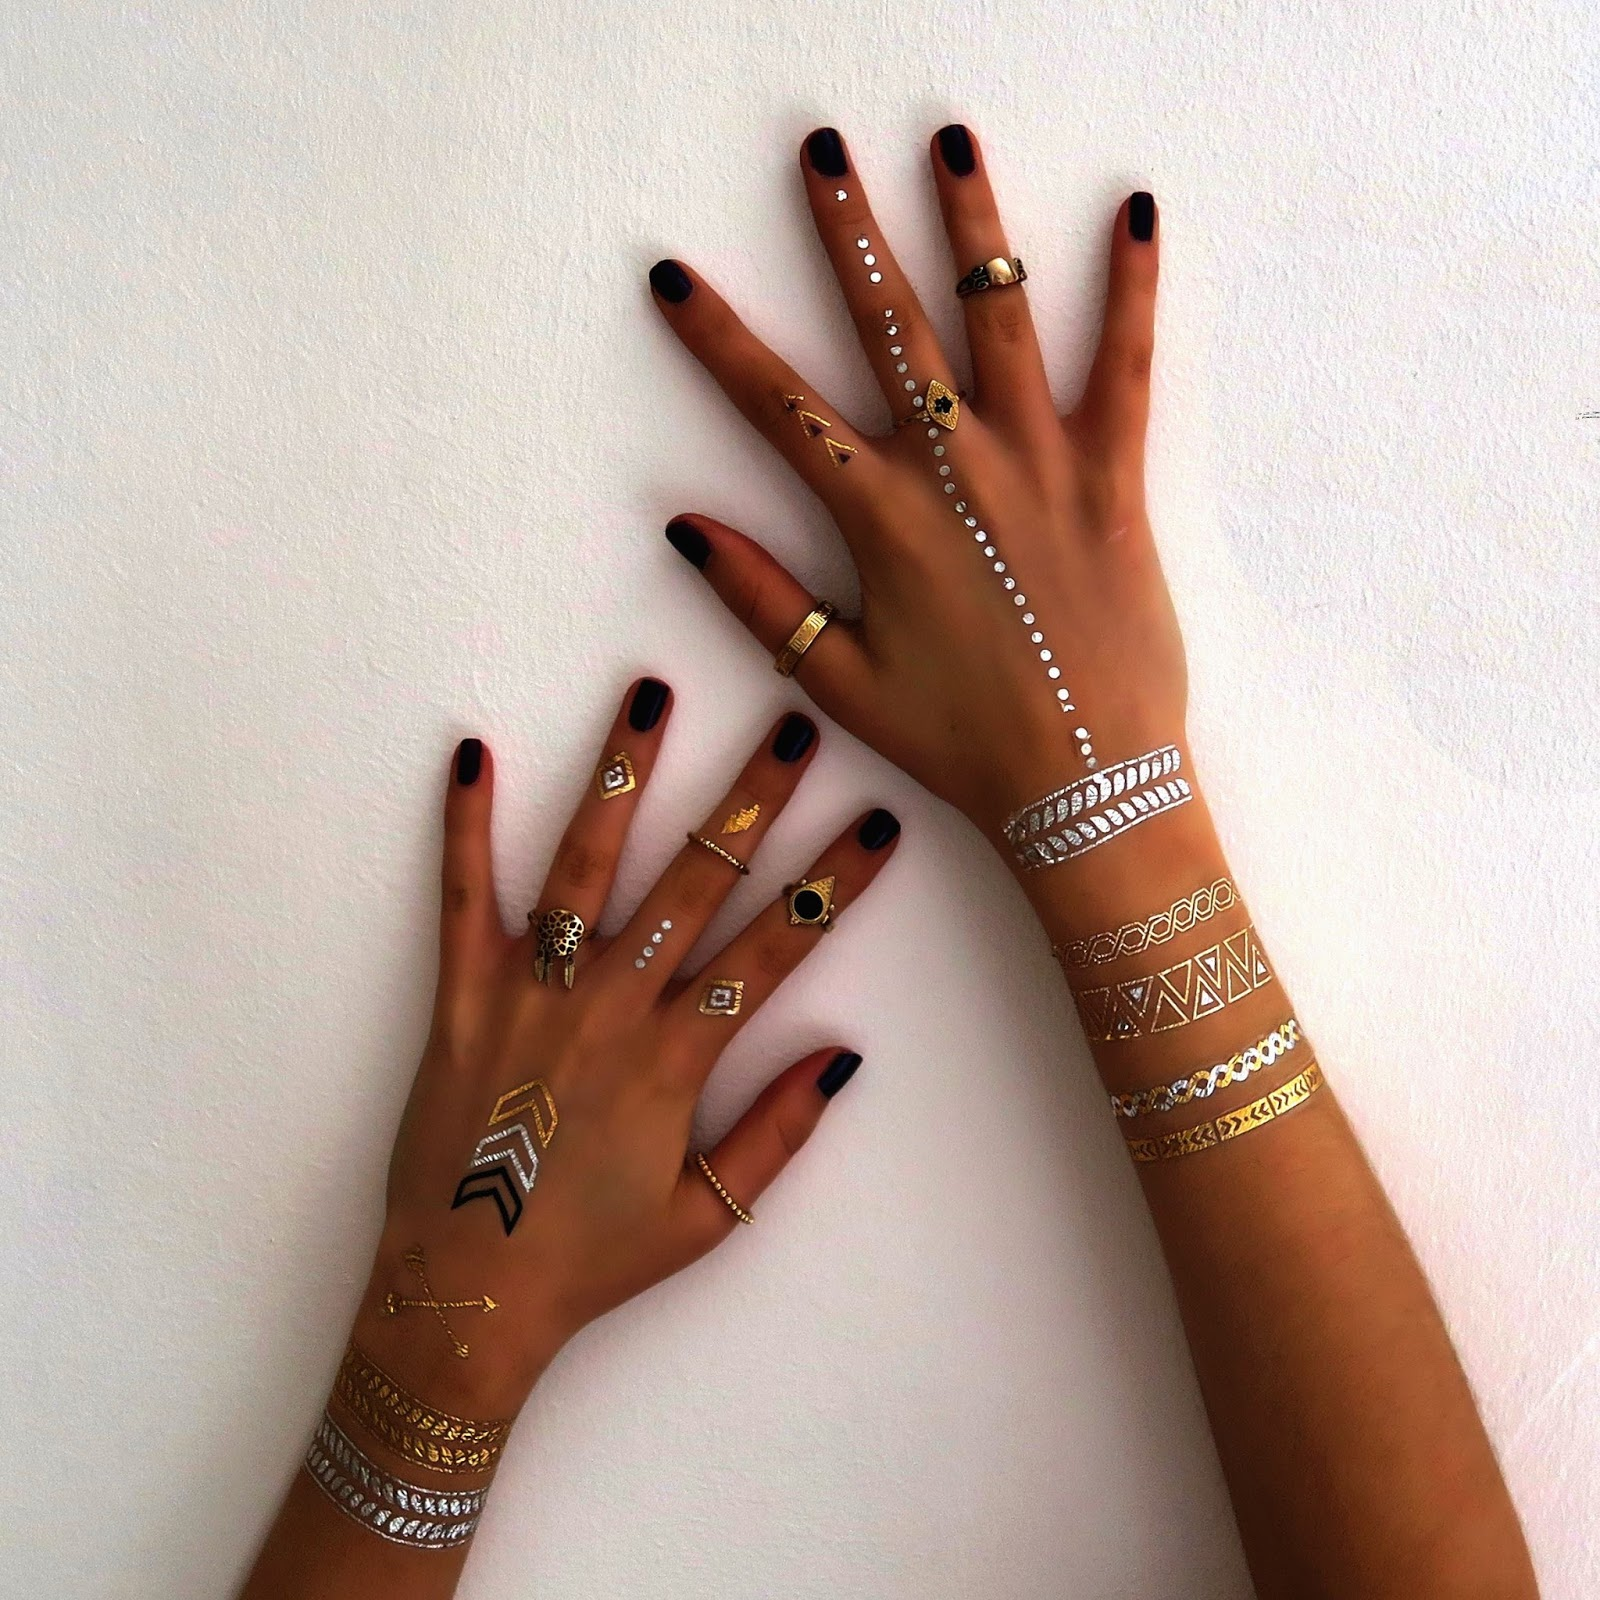 New trend alert for tattoos lovers the metallic ink for Permanent metallic ink tattoos